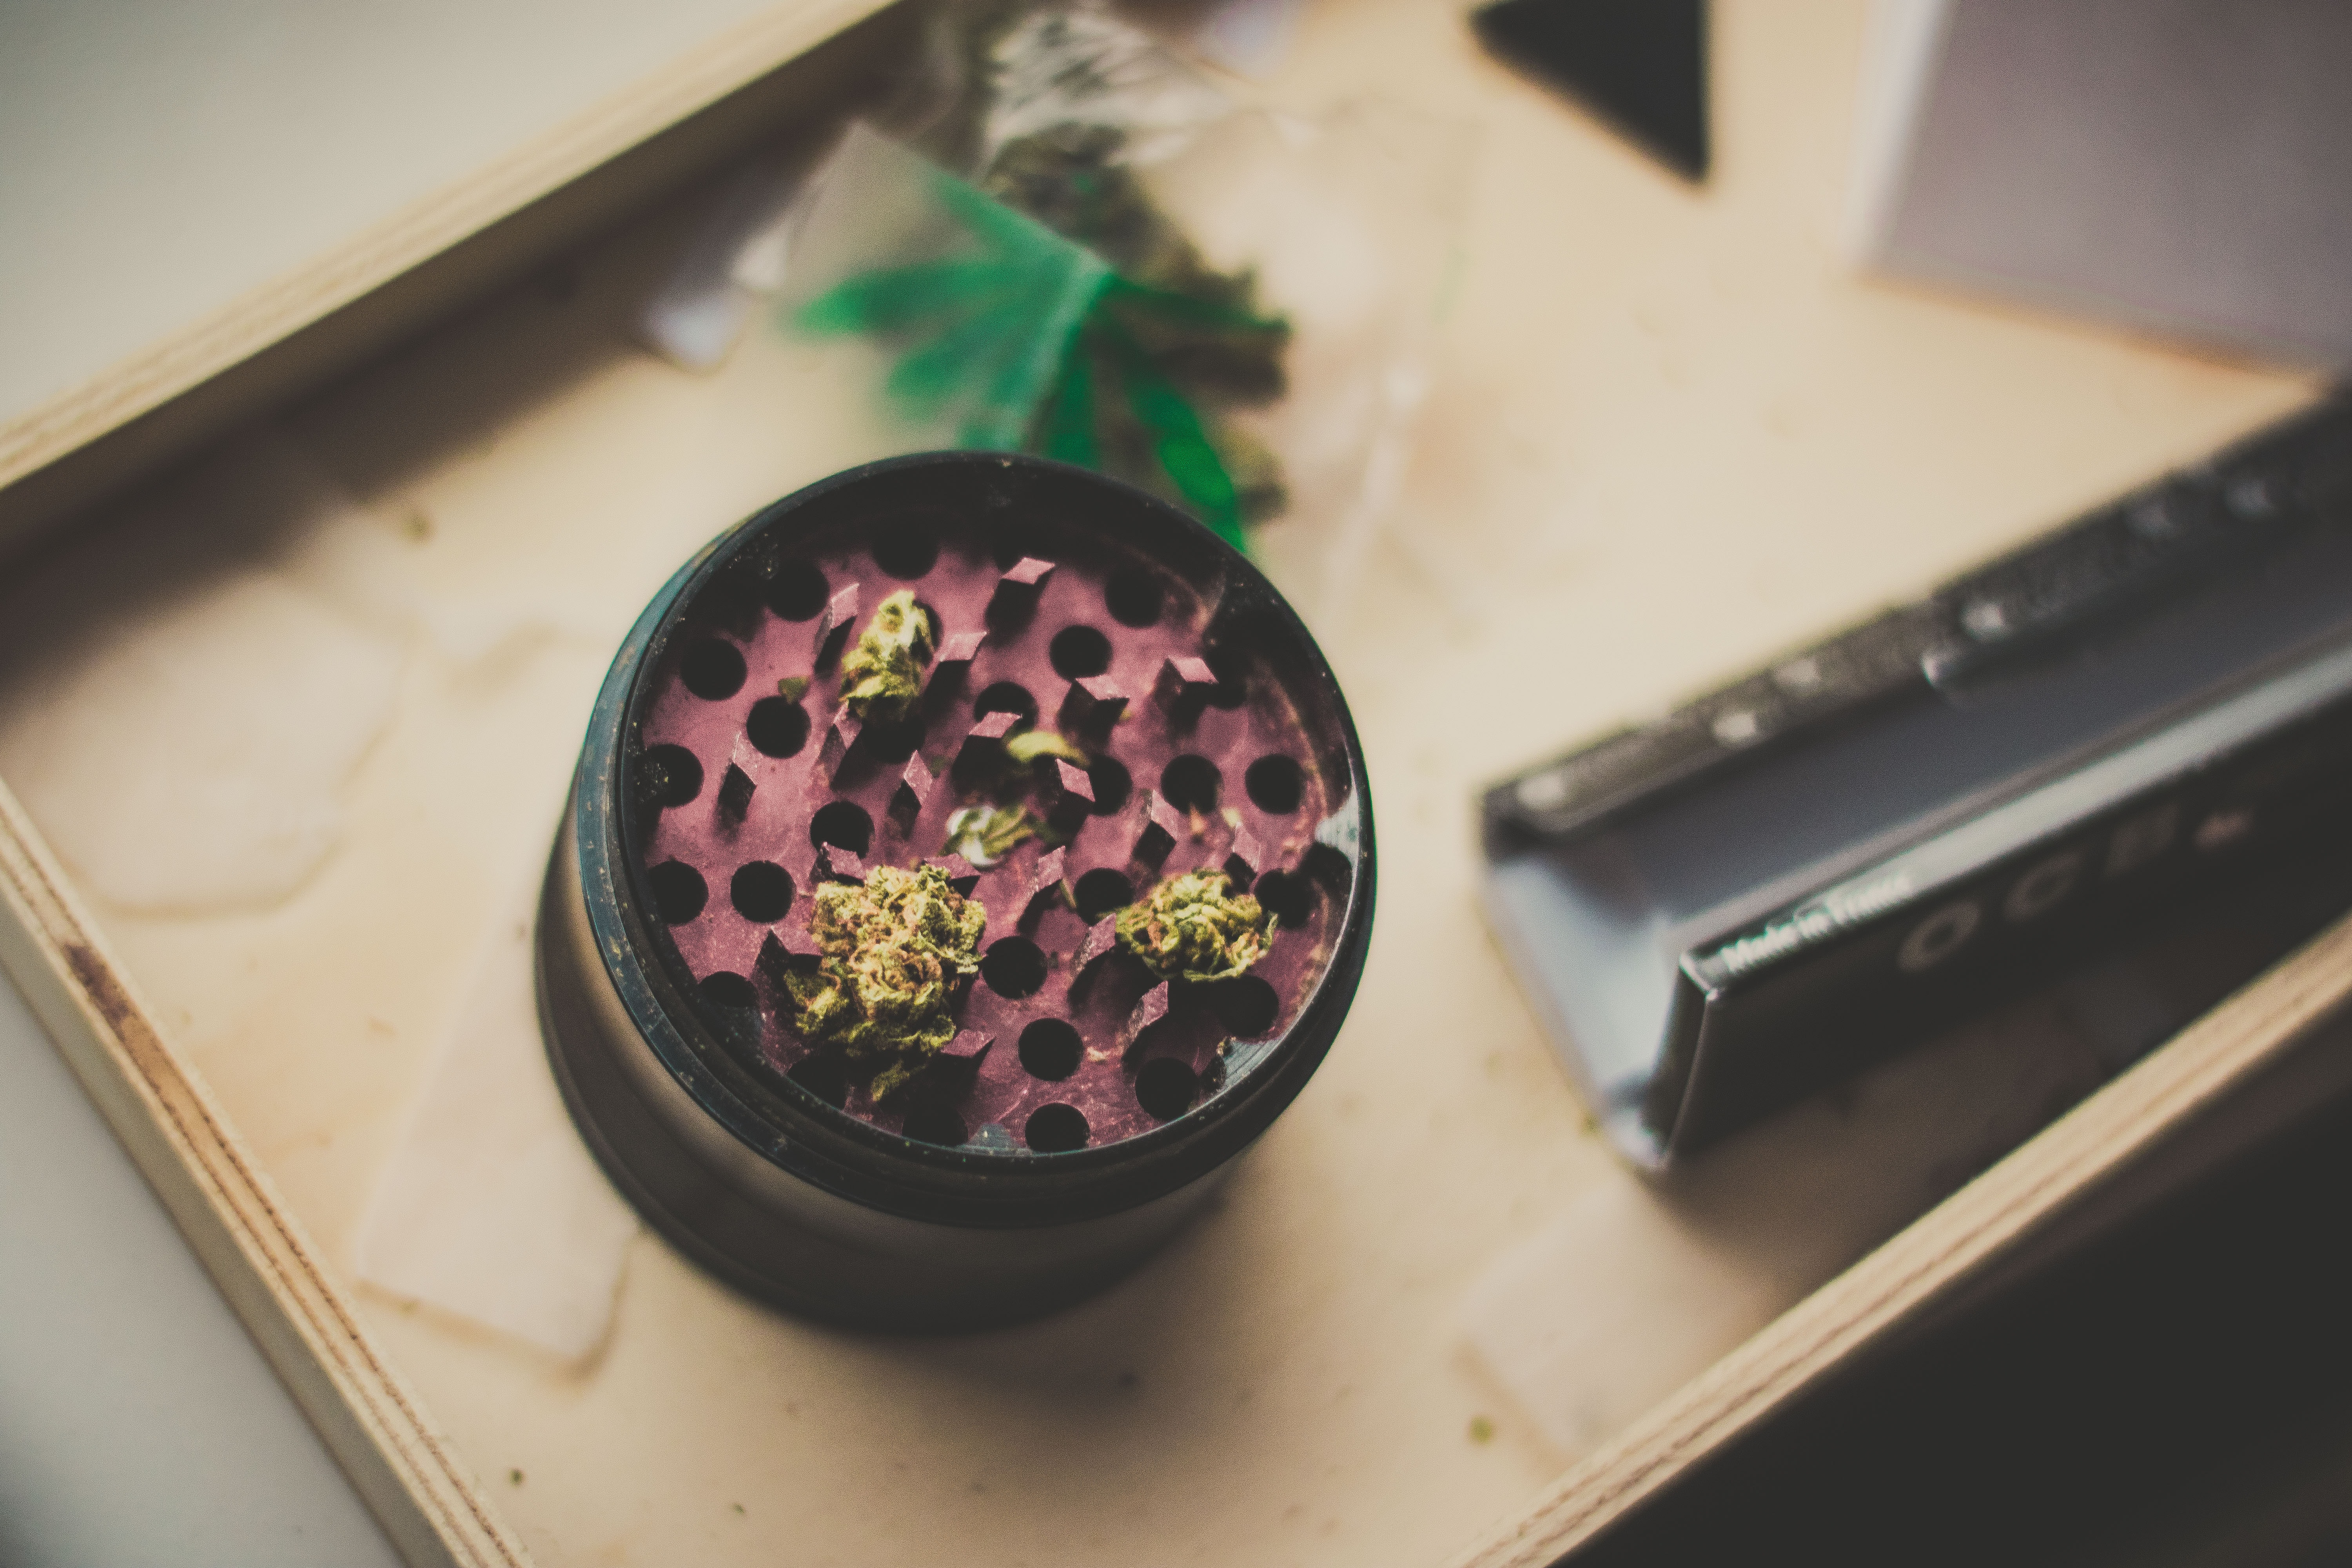 red and black herb grinder